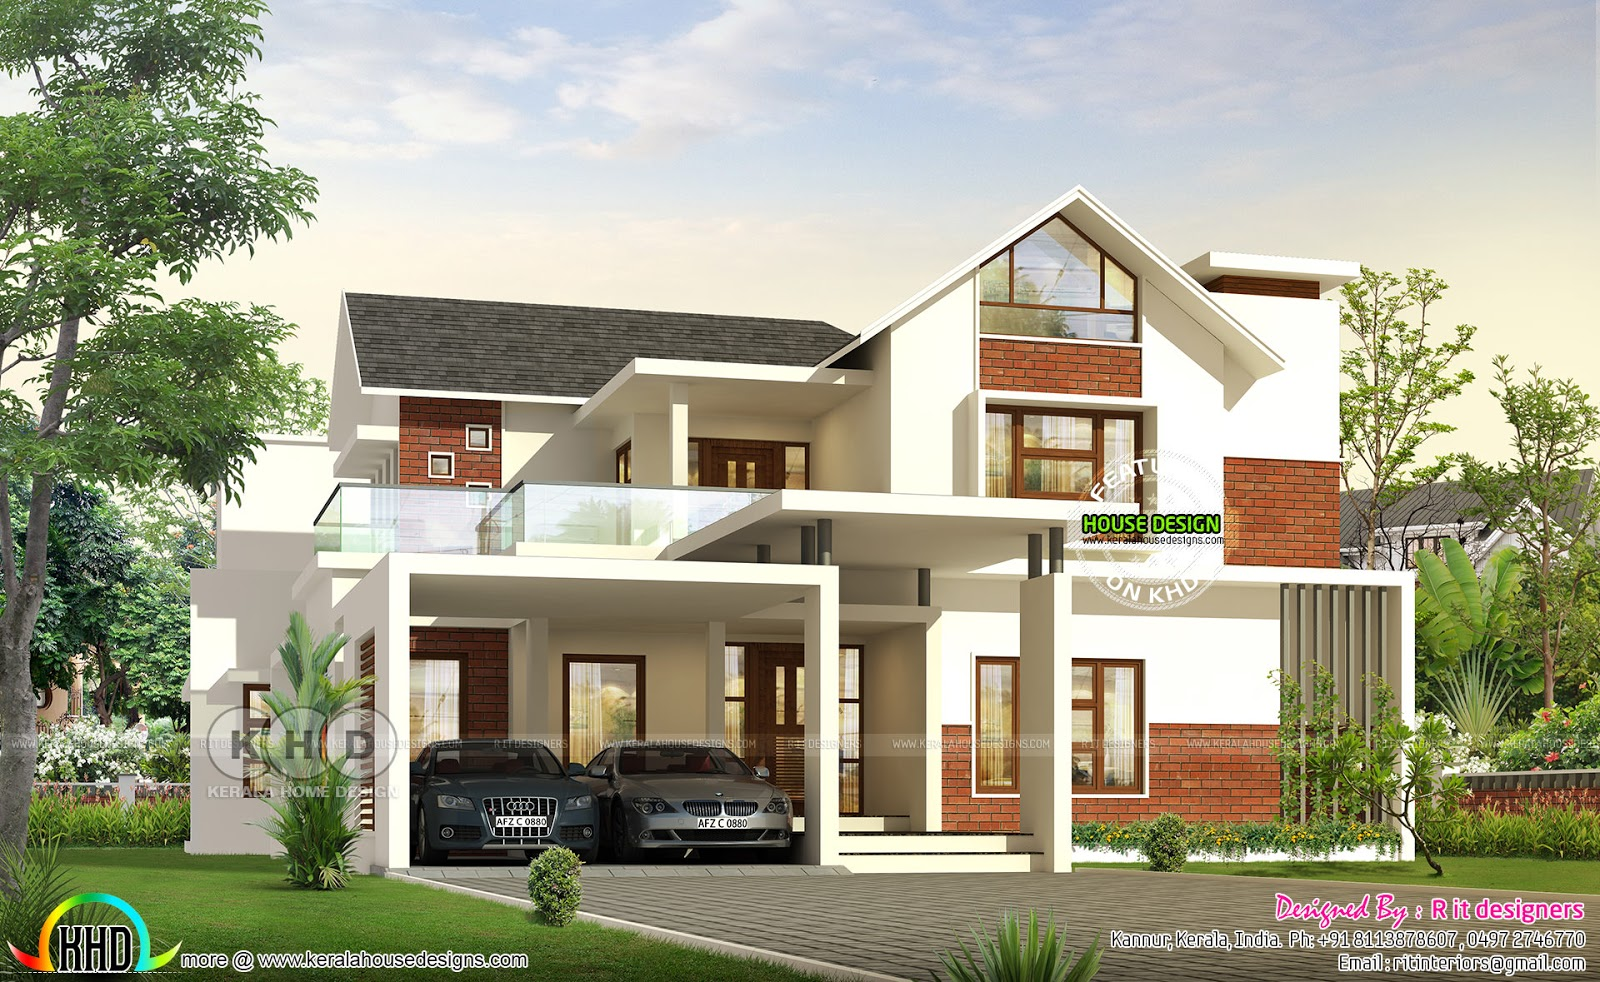 January 2020 Kerala Home Design And Floor Plans 8000 Houses